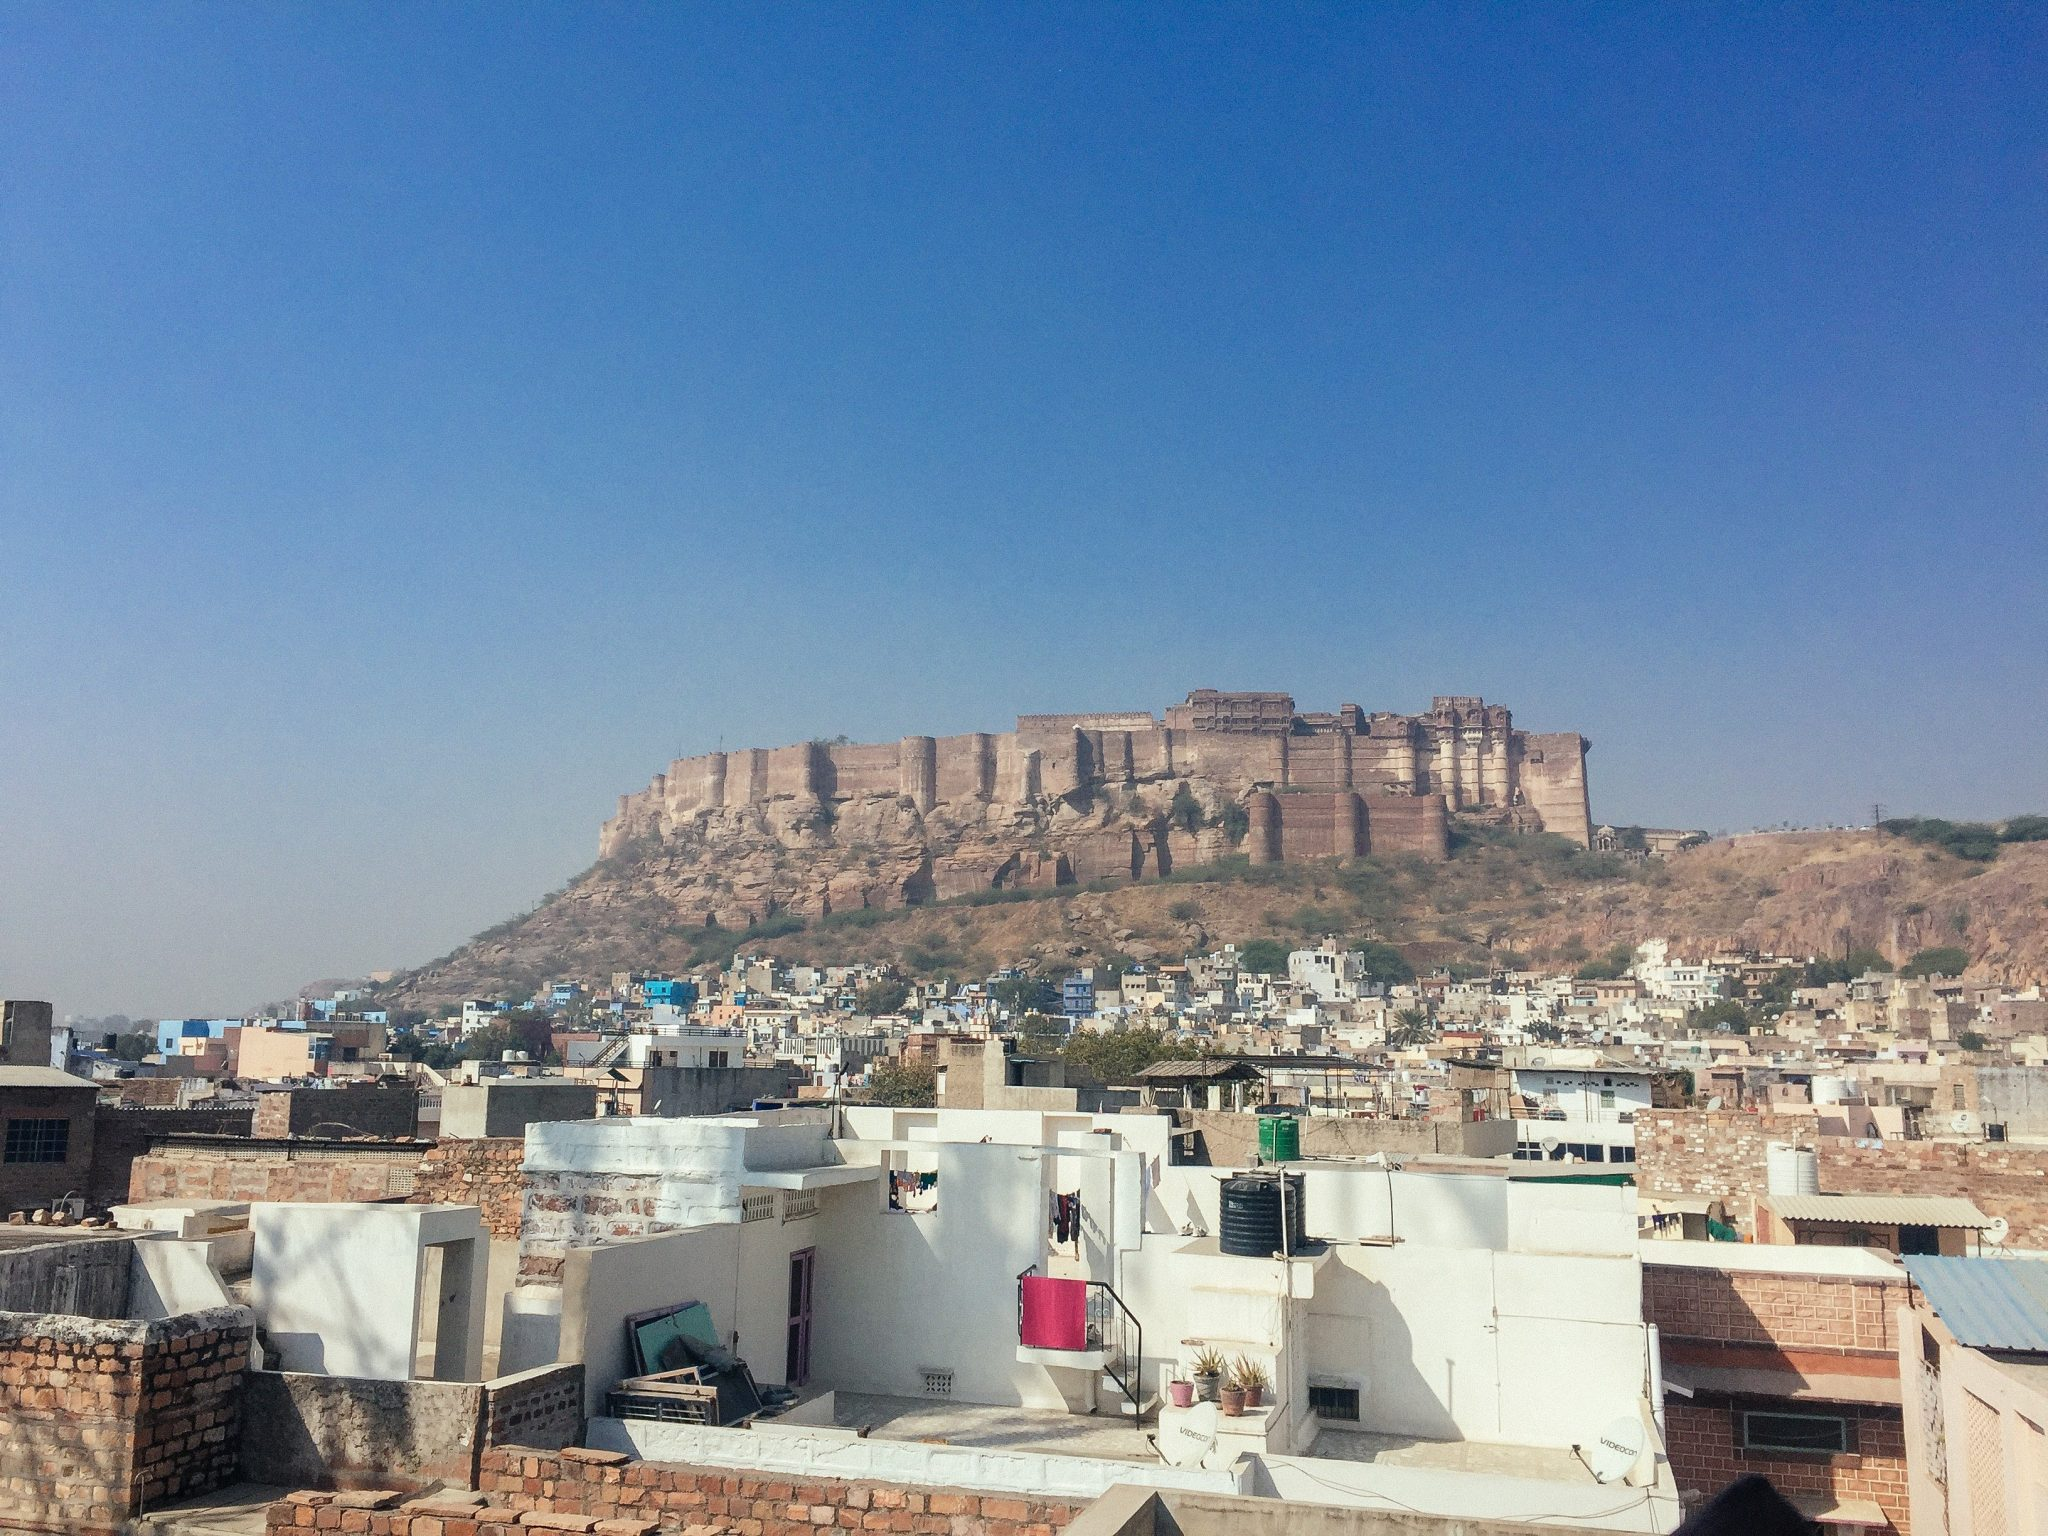 Mehrangarh Fort, Jodhpur, Rajasthan | India Attractions